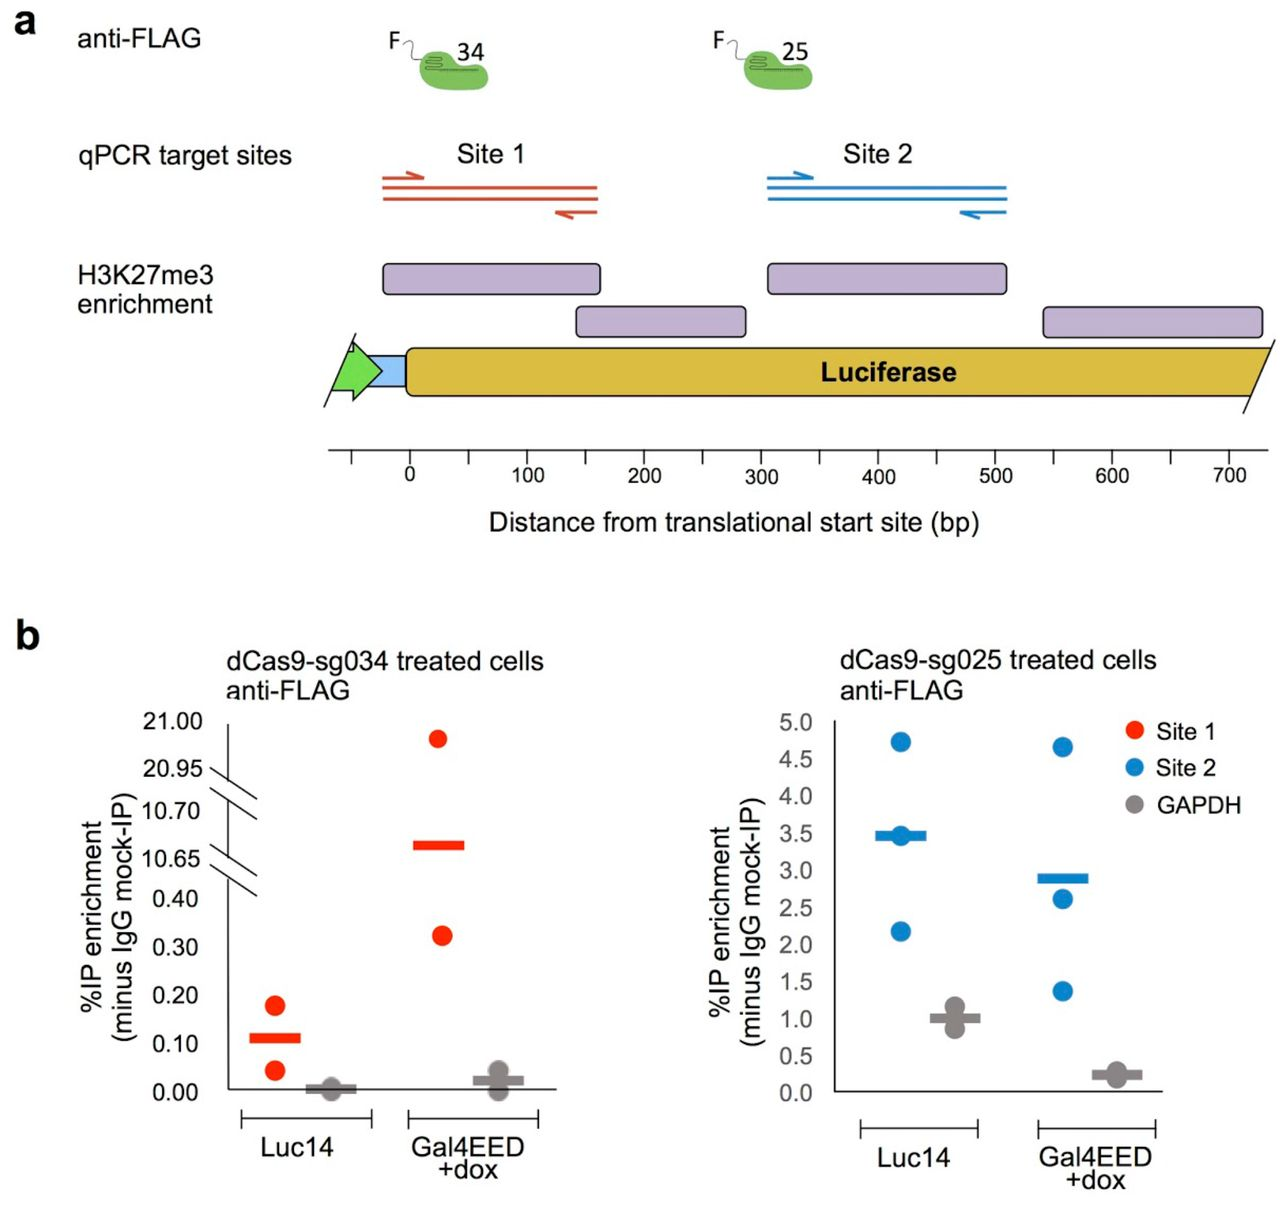 Dynamic regulatory states impact Cas9-mediated editing at the luciferase transgene. (a) Illustration of the luciferase transgene in the basal expression state and in different, artificially-regulated states. (b) Background-subtracted Luciferase expression levels per cell were measured 96 hours after dox treatment (GAL4EED +dox), immediately before transfection with Gal4-p65 plasmid DNA (+p65), or mock-transfection (vehicle only). Luciferase expression was measured in siRNA-treated cells 336 hours after transfection. a.u.: arbitrary units. (c) Editing efficiency for Cas9/sg034 was determined by SURVEYOR assays. Editing was reduced in the hyperactive expression state (Luc14 +p65) compared to the Luc14 basal state (*p = 0.018) and the GAL4EED partially repressed state (*p = 0.004). Reversal of the closed state via siRNA treatment (GAL4EED +dox +siRNA) was accompanied by an increase in luciferase expression and editing efficiency (p = 0.045) compared to the fully repressed state. Editing efficiencies for Luc14, GAL4EED, and GAL4EED +dox shown here are the same data shown in Figure 3c .